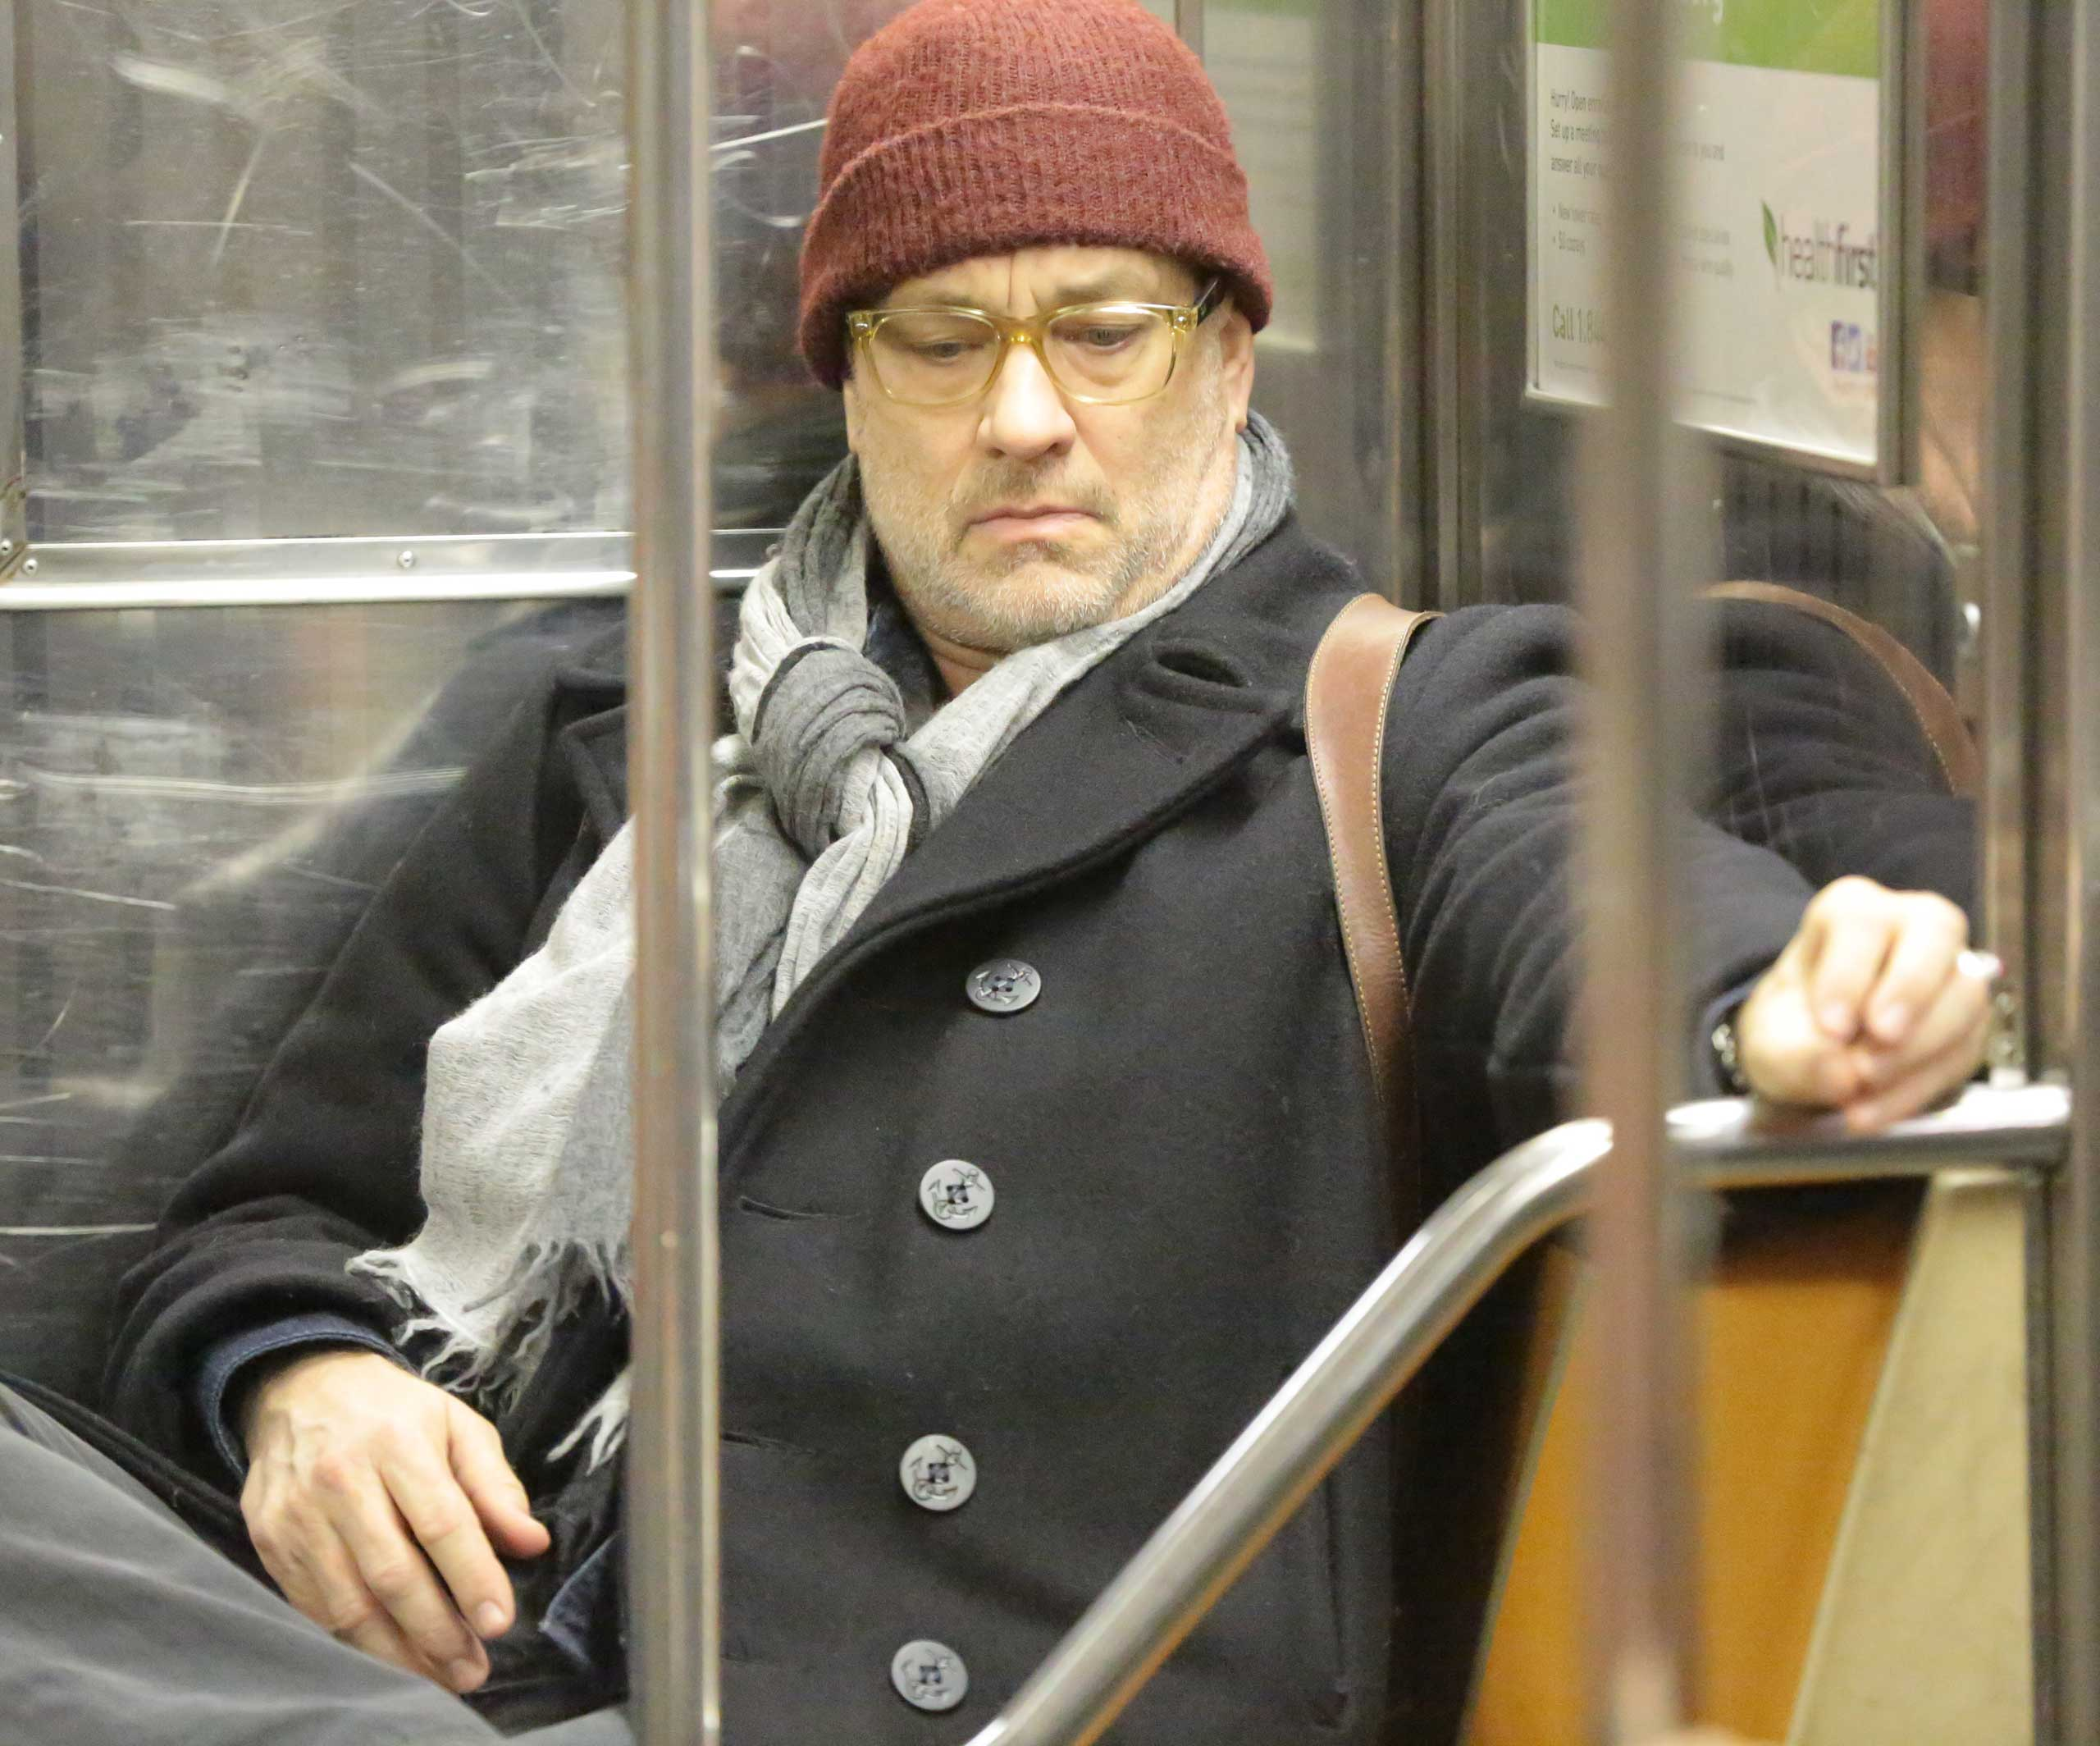 Tom Hanks rides the subway in New York City on Jan. 22, 2015.